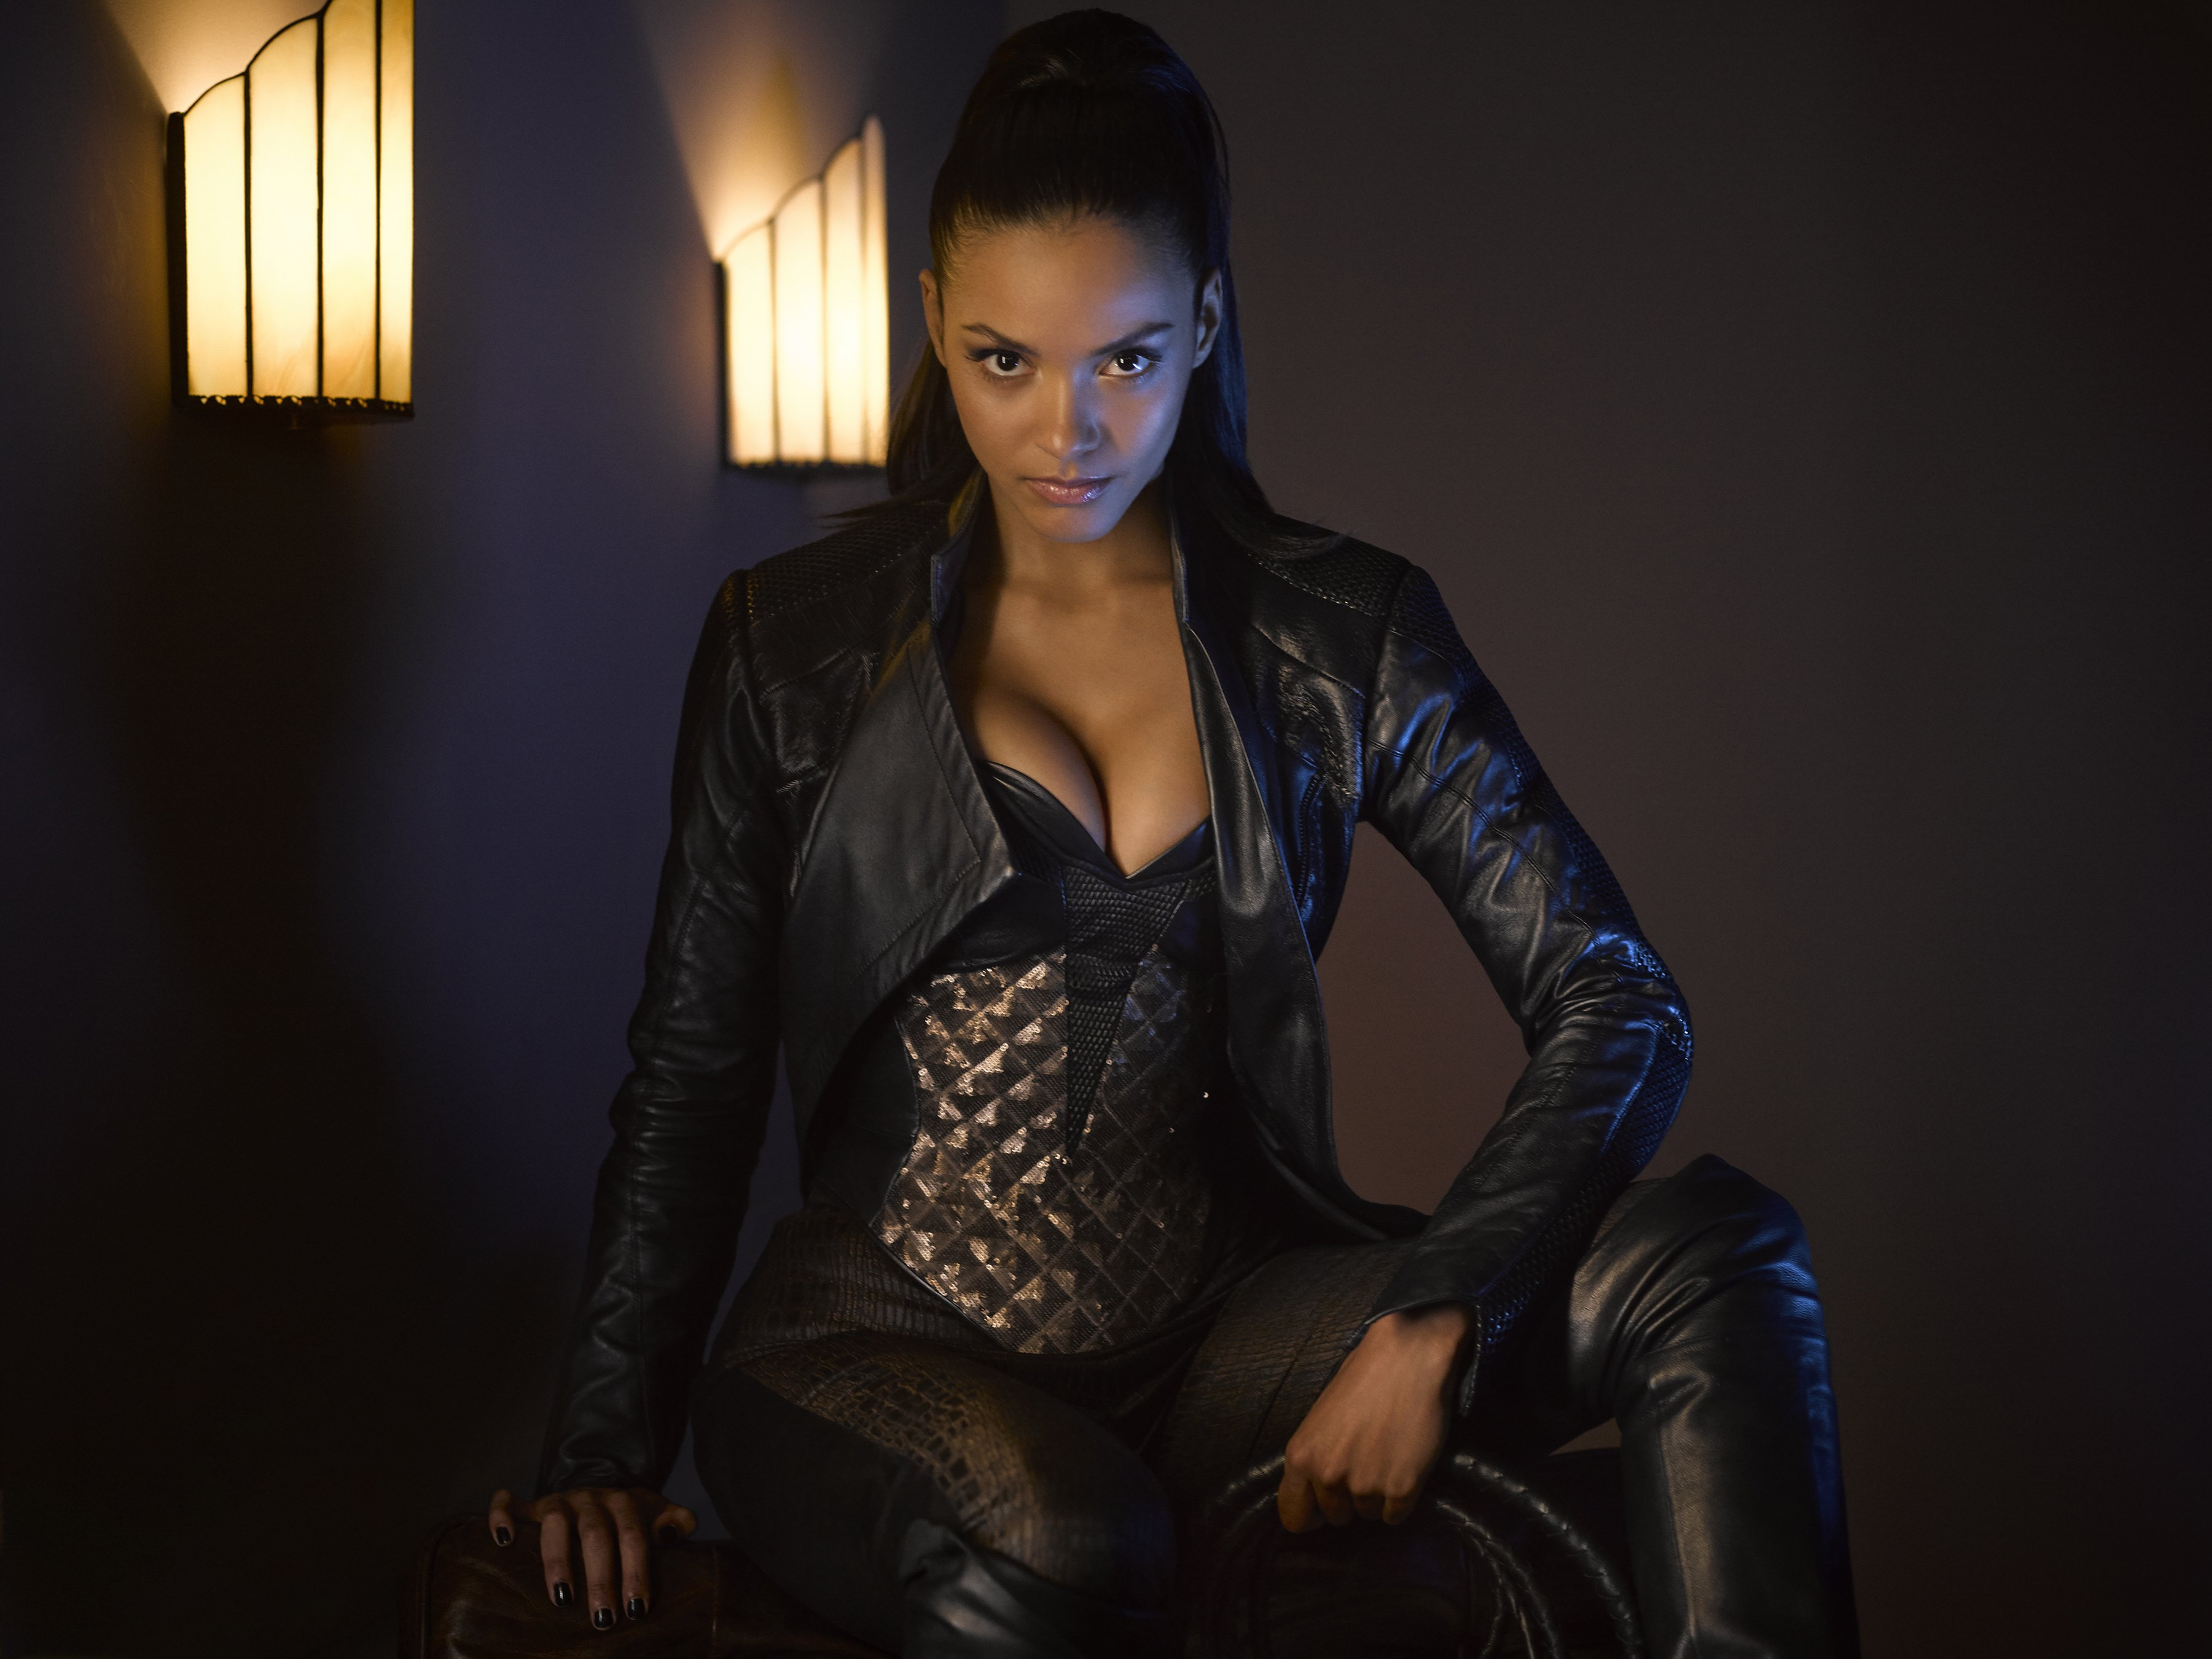 35 Hot Pictures Of Jessica Lucas Will Drive You Nuts For Her-7774